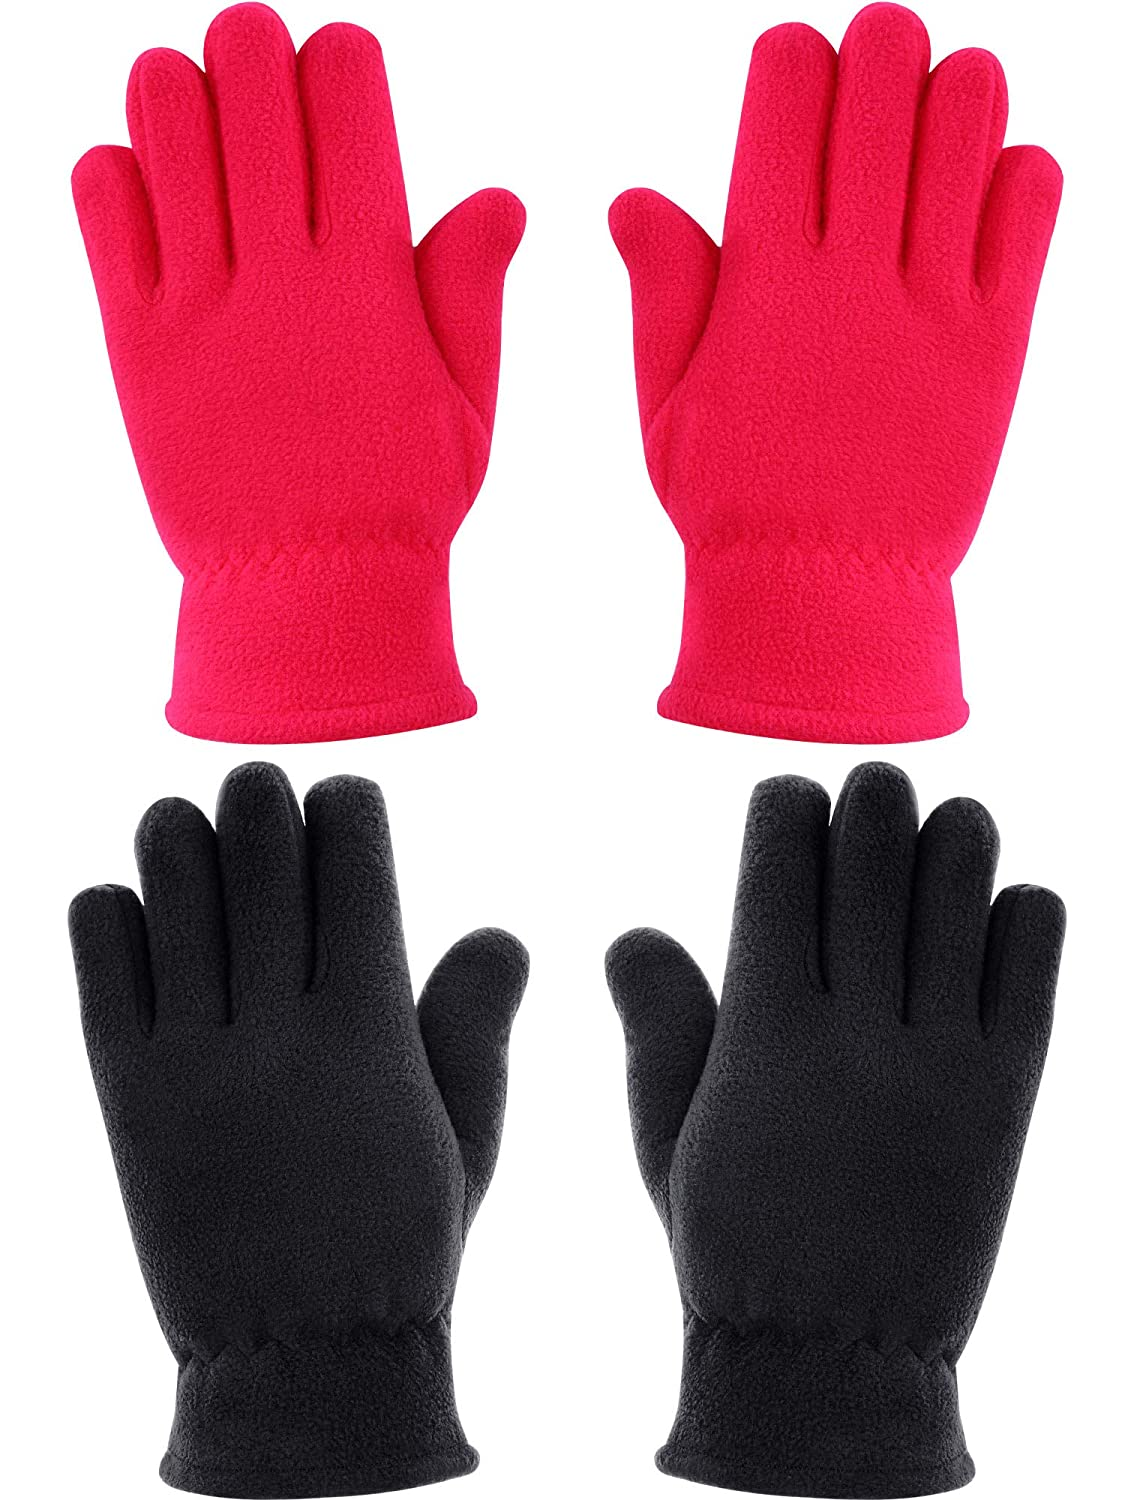 SATINIOR 2 Pairs Kids Gloves Boys Girls Fleece Gloves Full Fingers Warm Gloves for Winter Outdoors Activities Supplies